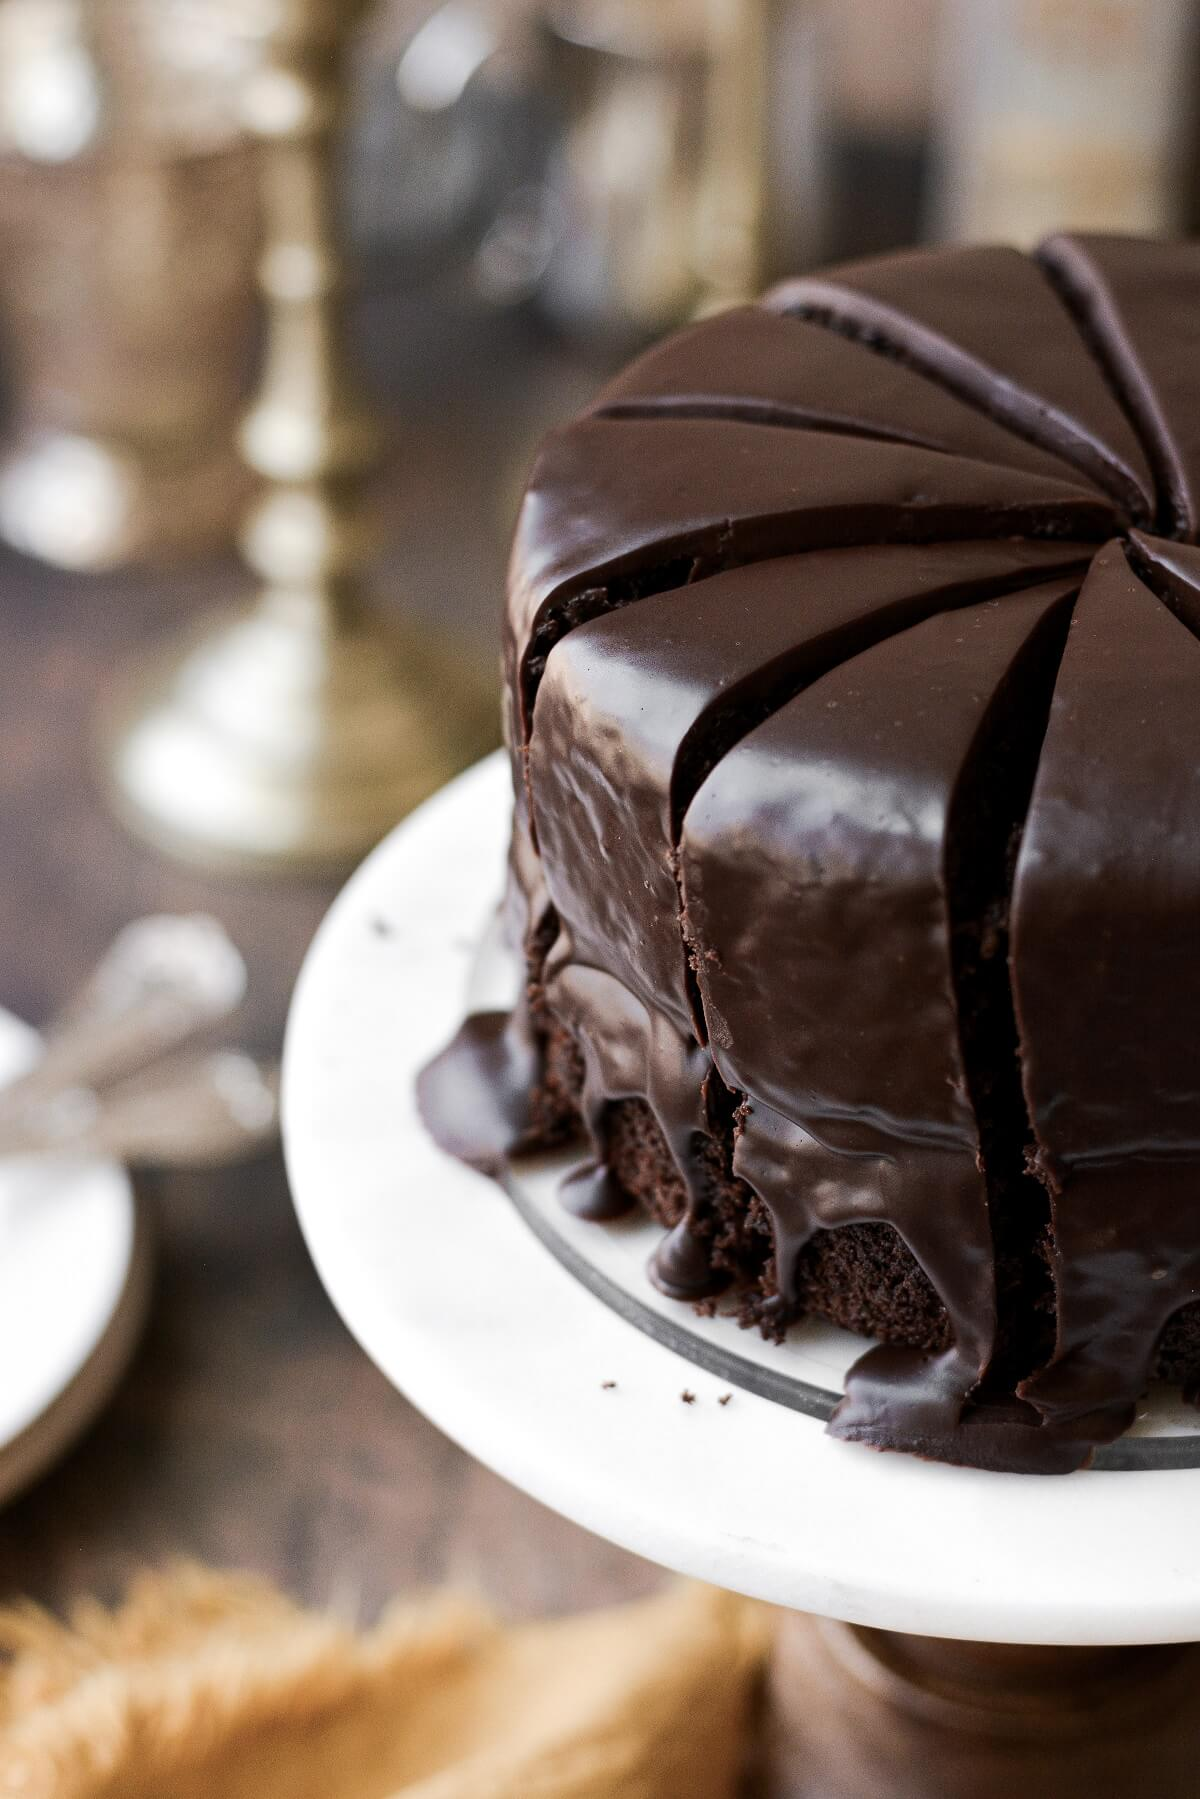 A chocolate fudge cake cut into slices on a cake stand.